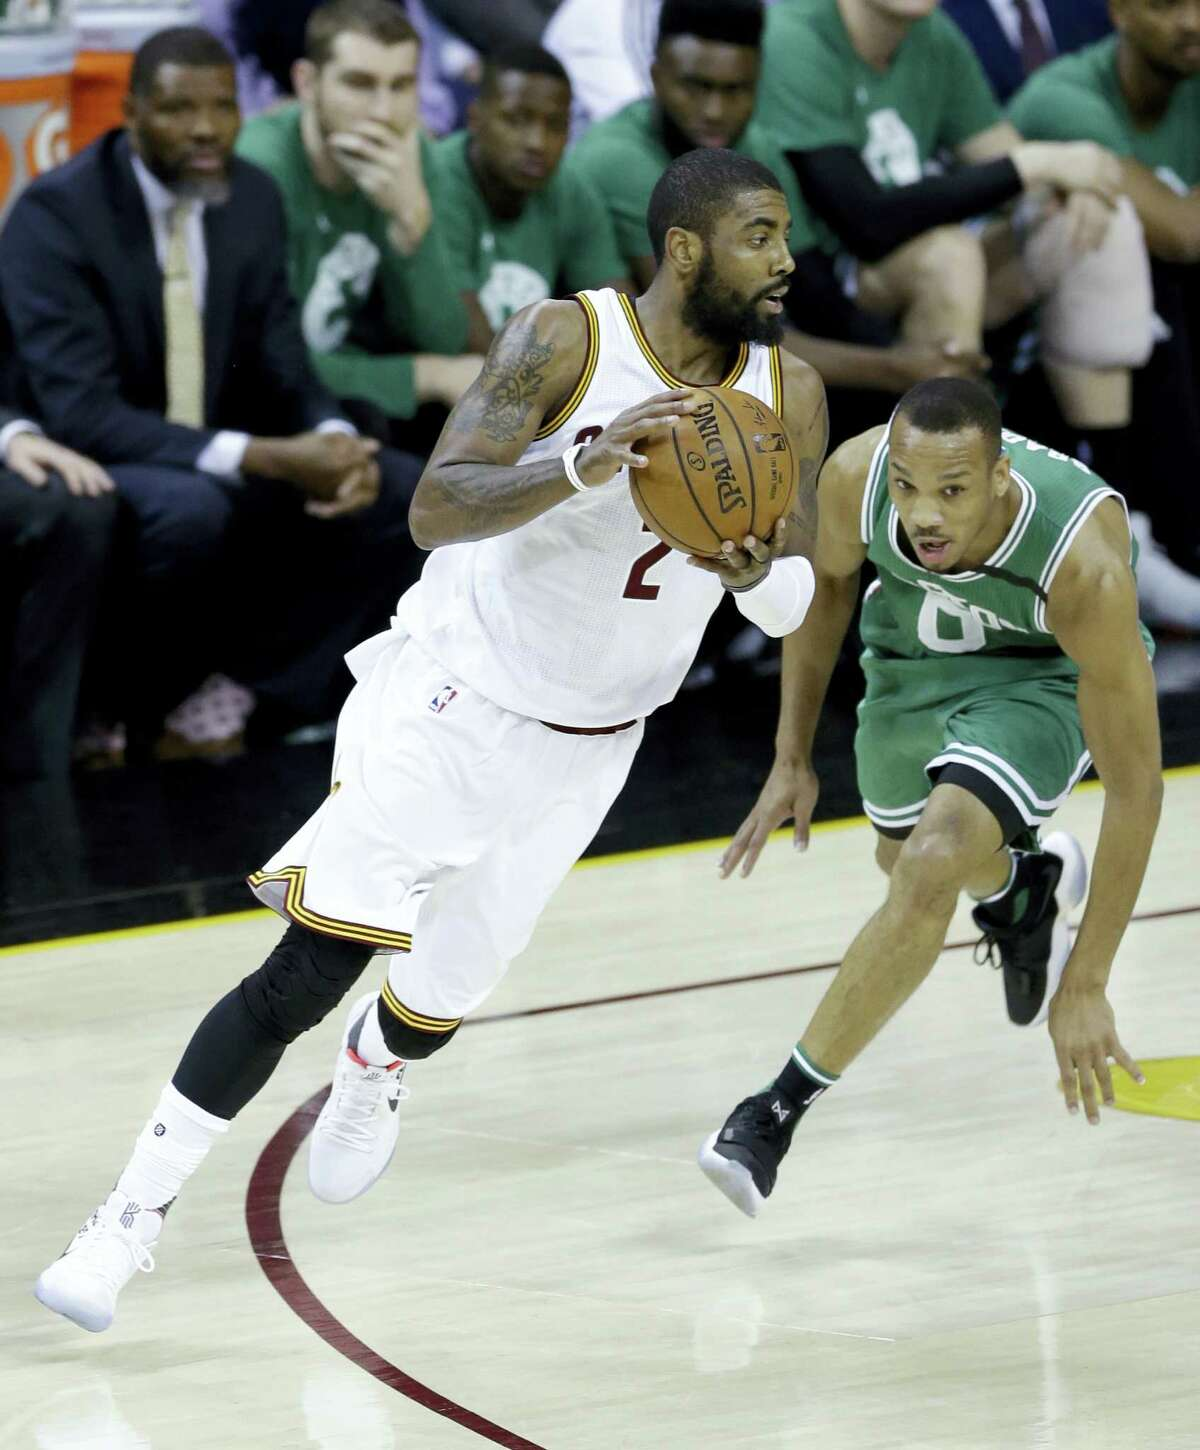 Cleveland Cavaliers' Kyrie Irving (2) drives against Boston Celtics' Avery Bradley (0) during the first half of Game 4 of the NBA basketball Eastern Conference finals on May 23, 2017 in Cleveland.